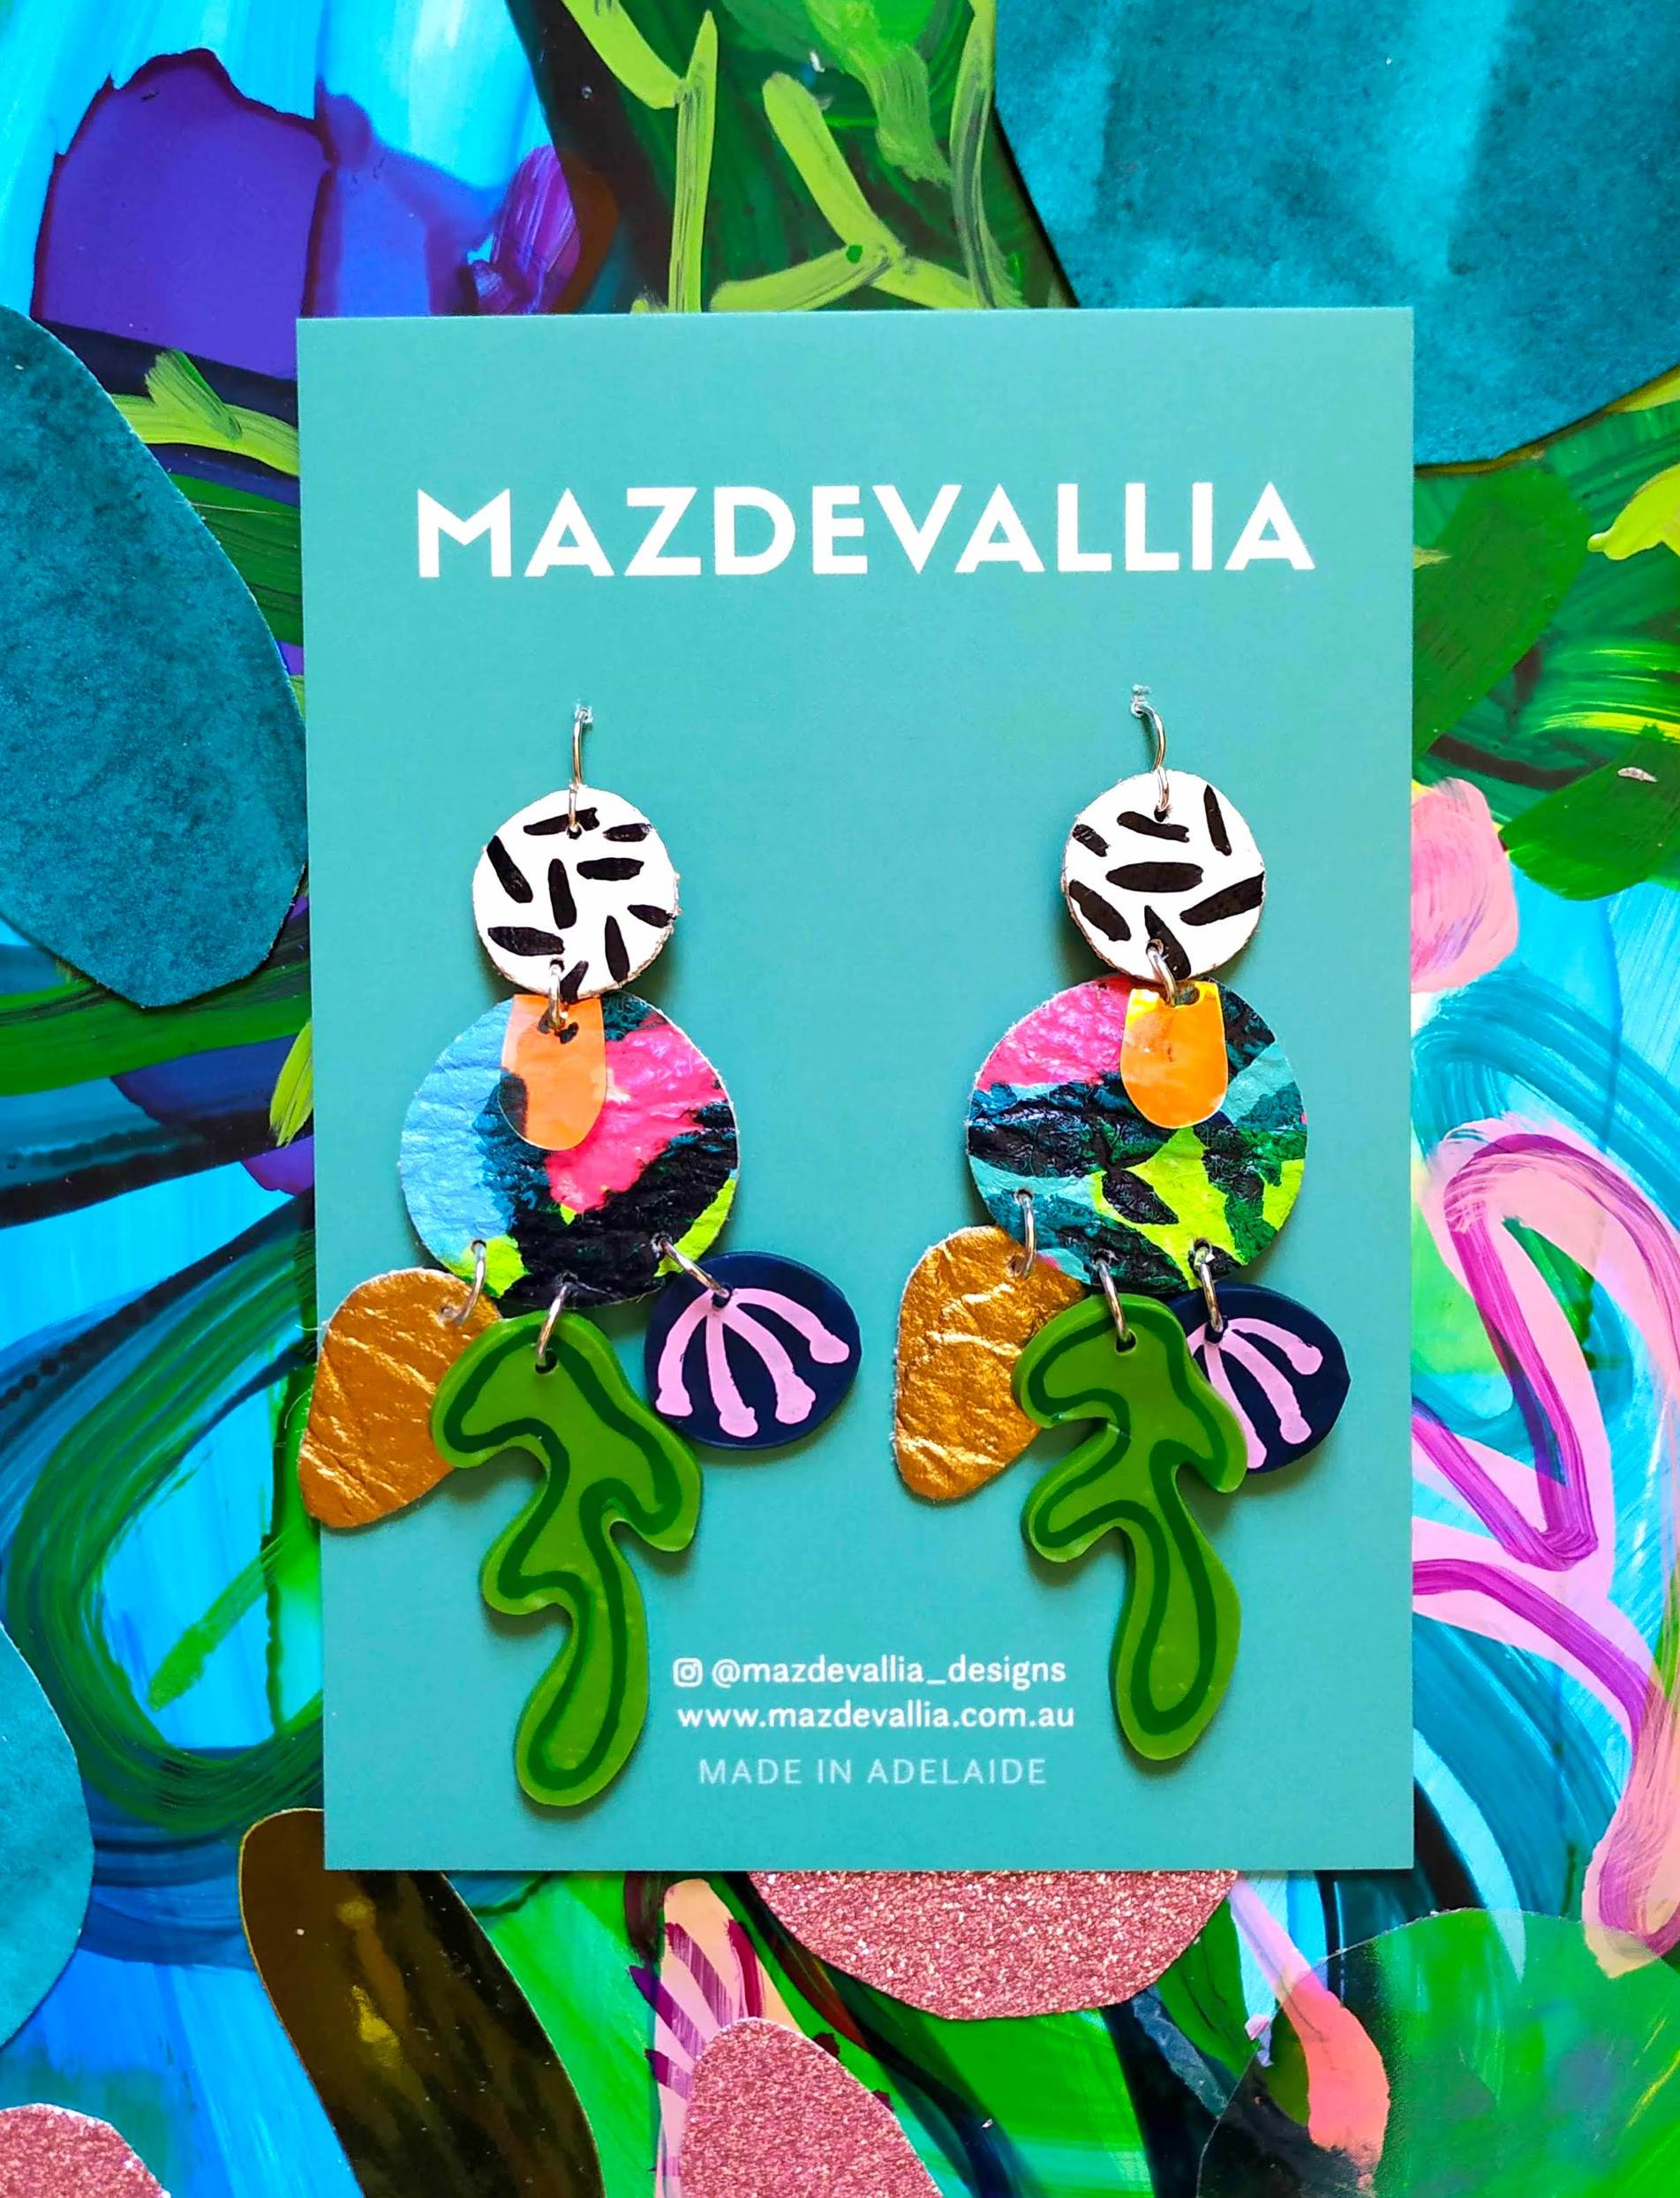 Mazdevallia - Amamzonia Statement Earrings